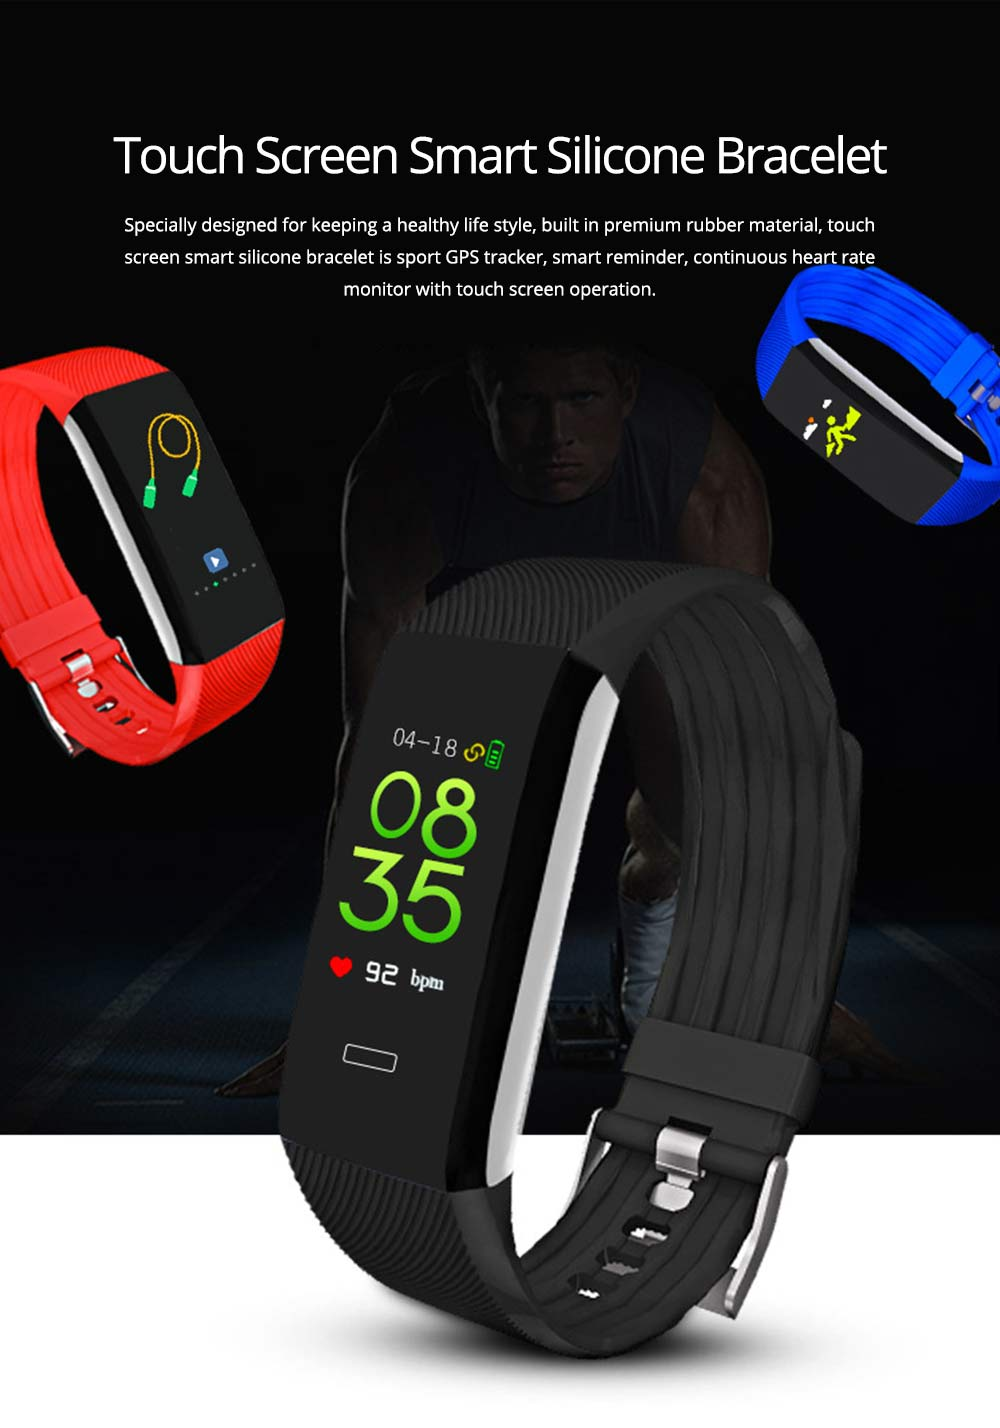 Waterproof Circle Color Screen Smart Bracelet with Multiple-sports Modes for Continuous Heart Rate Monitoring 0